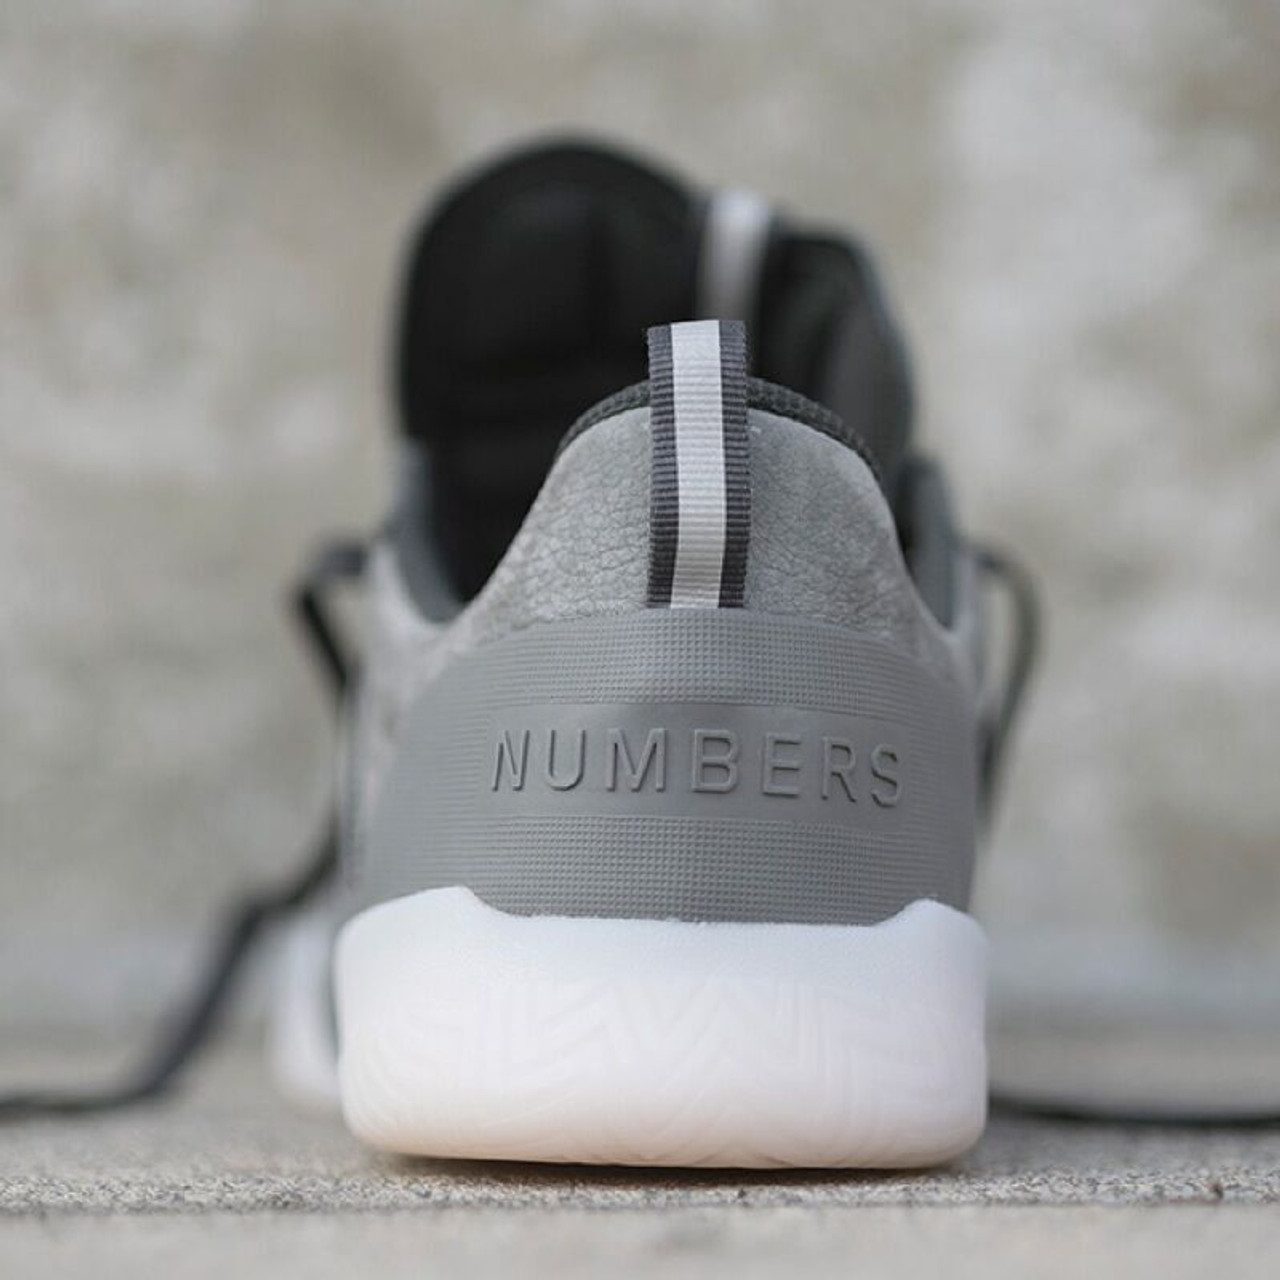 finest selection 533b5 fe4ac ... Adidas Numbers City Cup Limited Shoes Grey Carbon ...